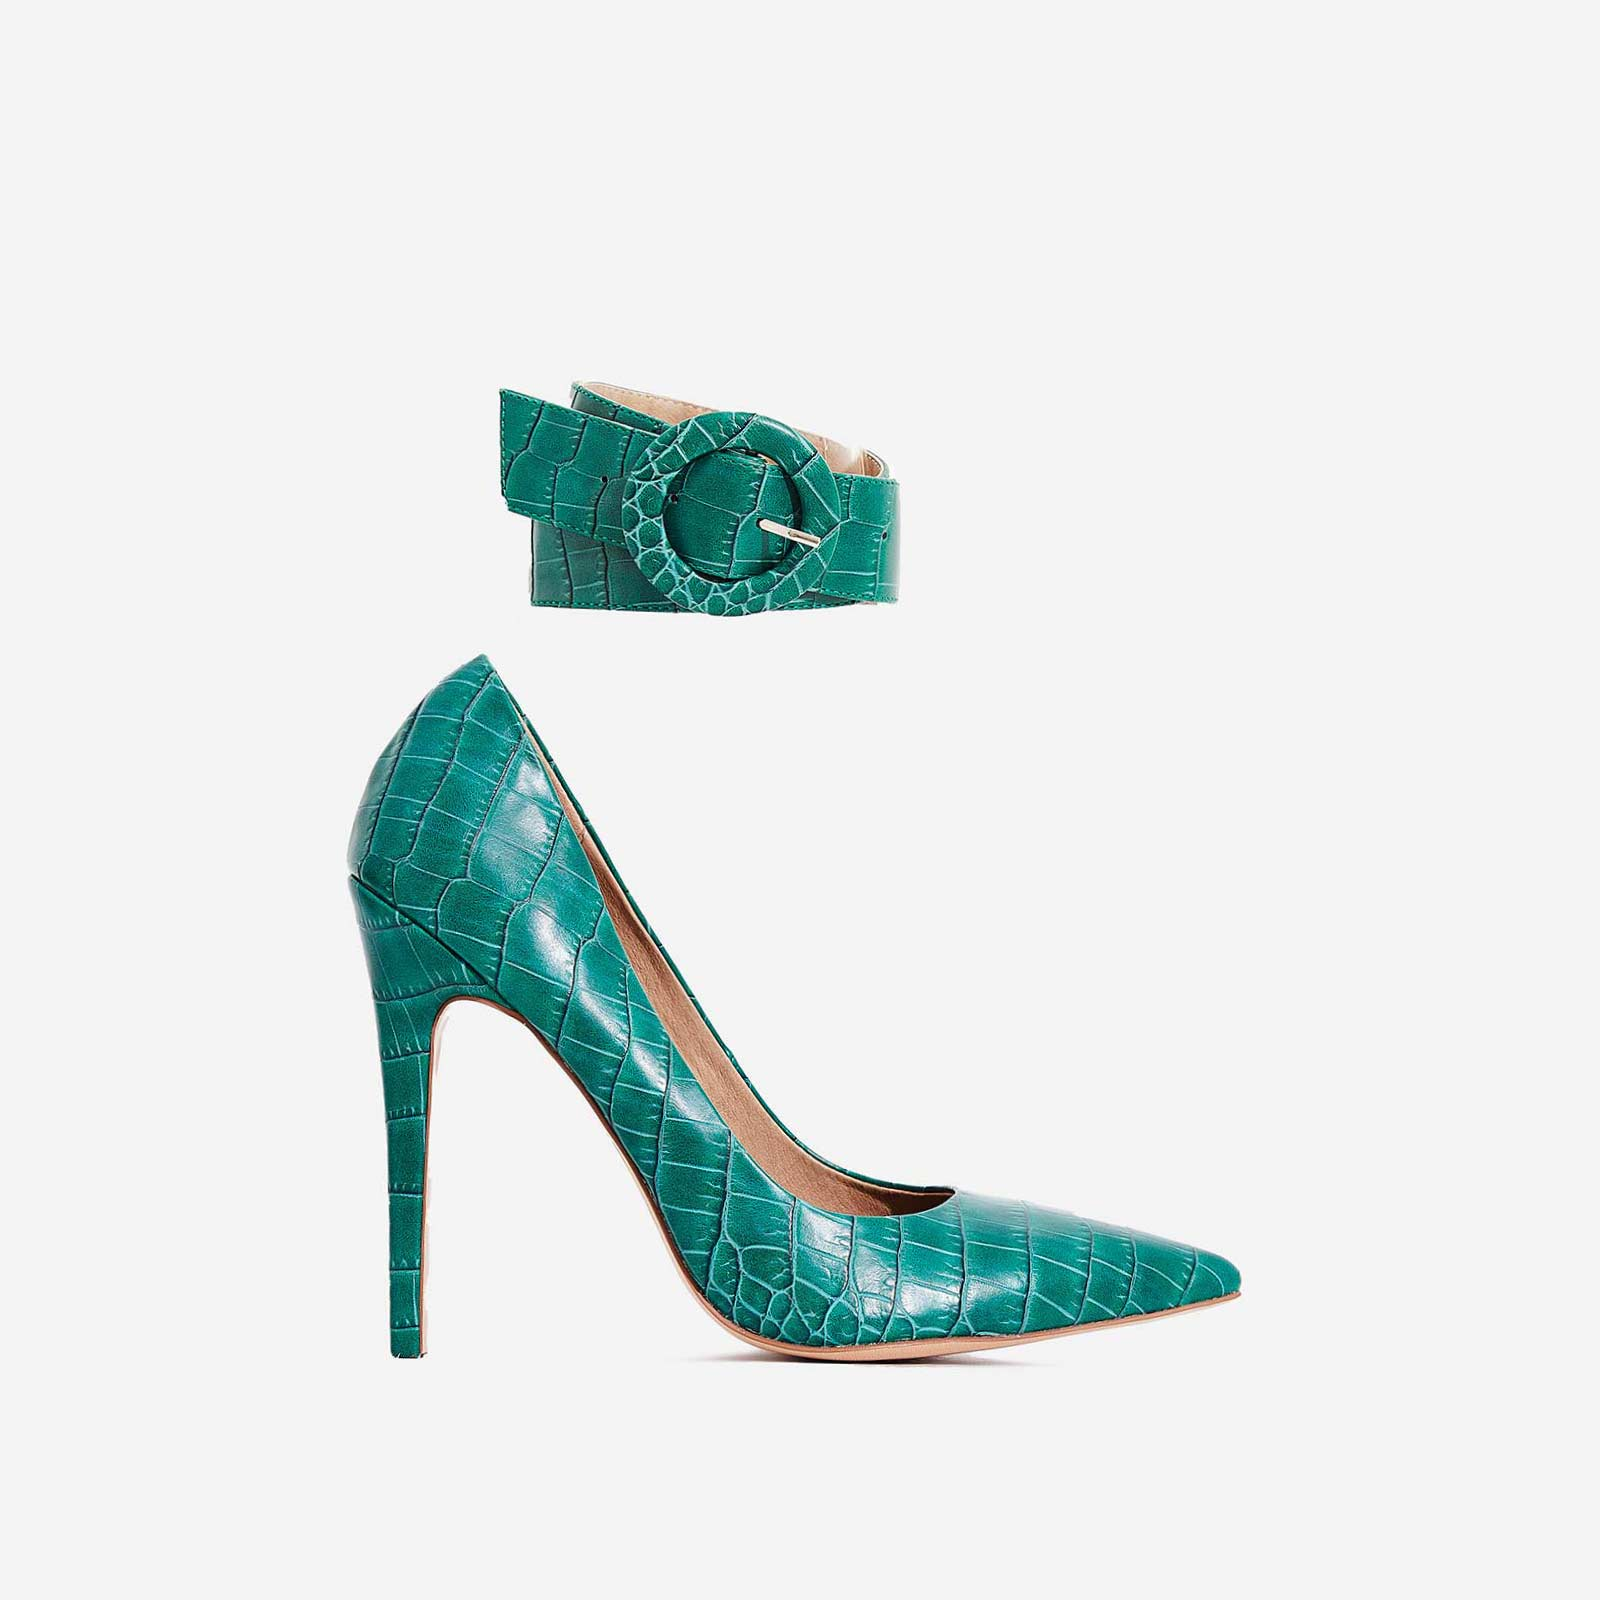 Stefano Ankle Strap Court Heel In Green Croc Print Faux Leather